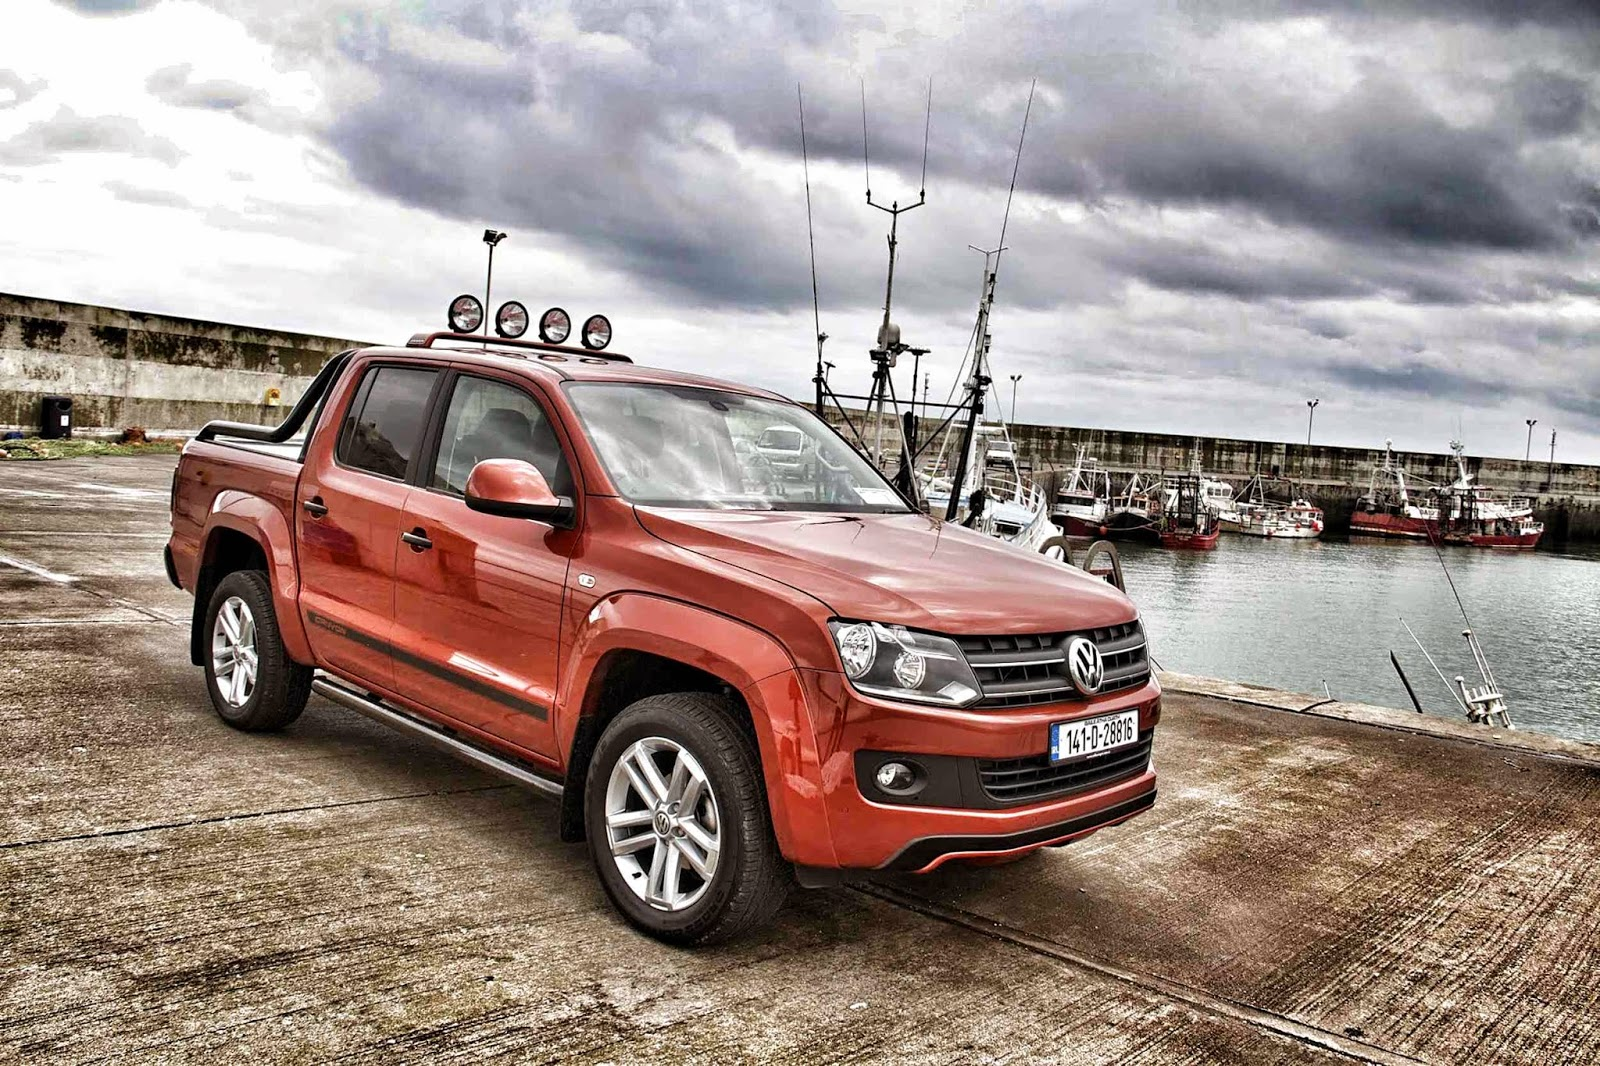 Irish Car+Travel Magazine: VW Amarok wins UK award